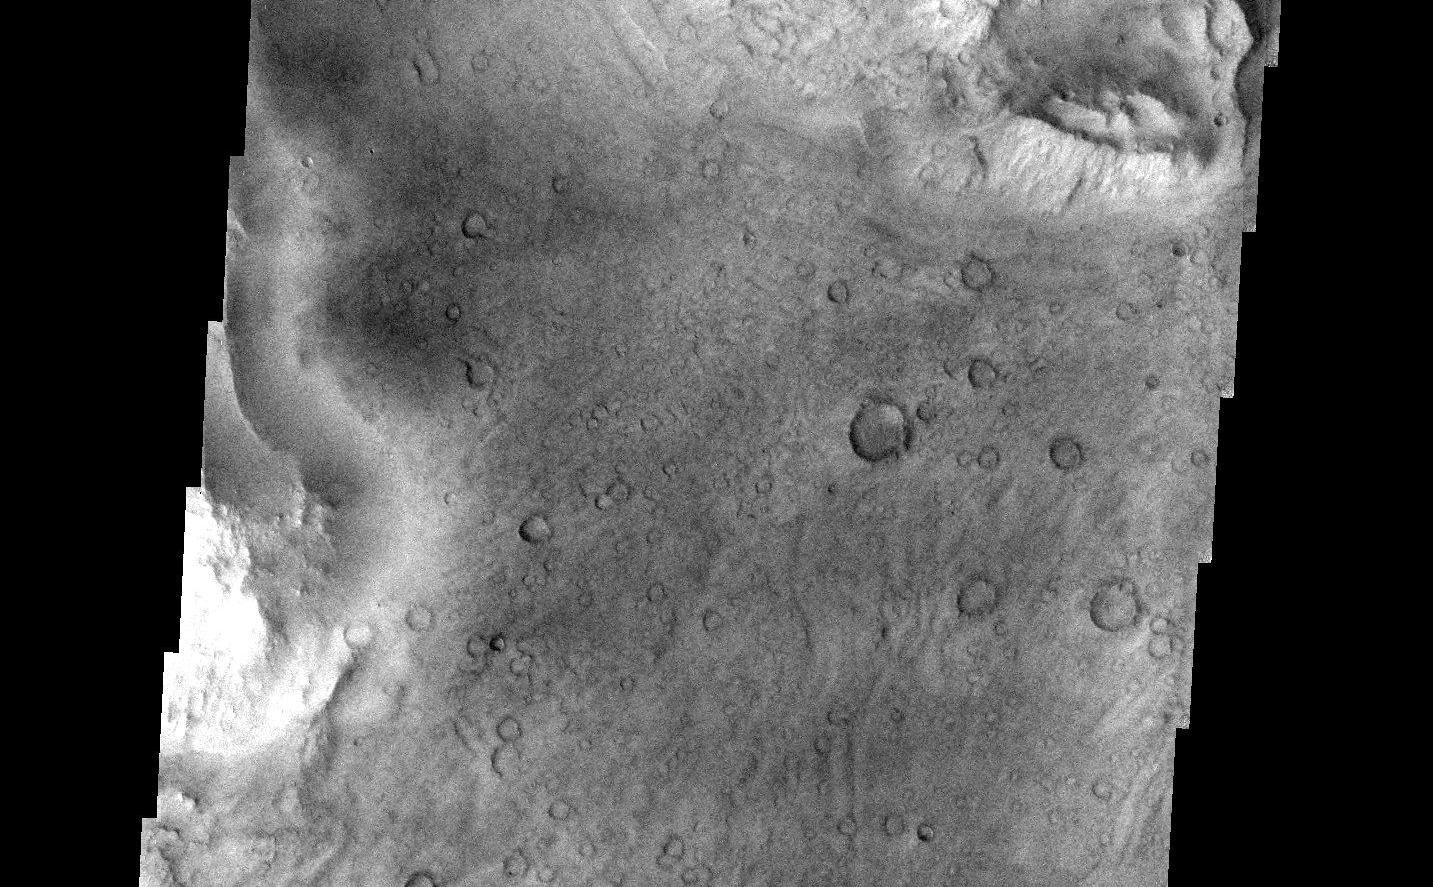 This image is located near the boundary between Syrtis Major and Isidis Planitia. The top of the image shows rough material that has eroded away from the lower portion of the image, revealing an underlying surface that has many small craters. It also reveals an ancient flow lobe that is barely discernable, crossing the southern part of the image (this flow lobe is much easier to see as a smooth region in the context image).